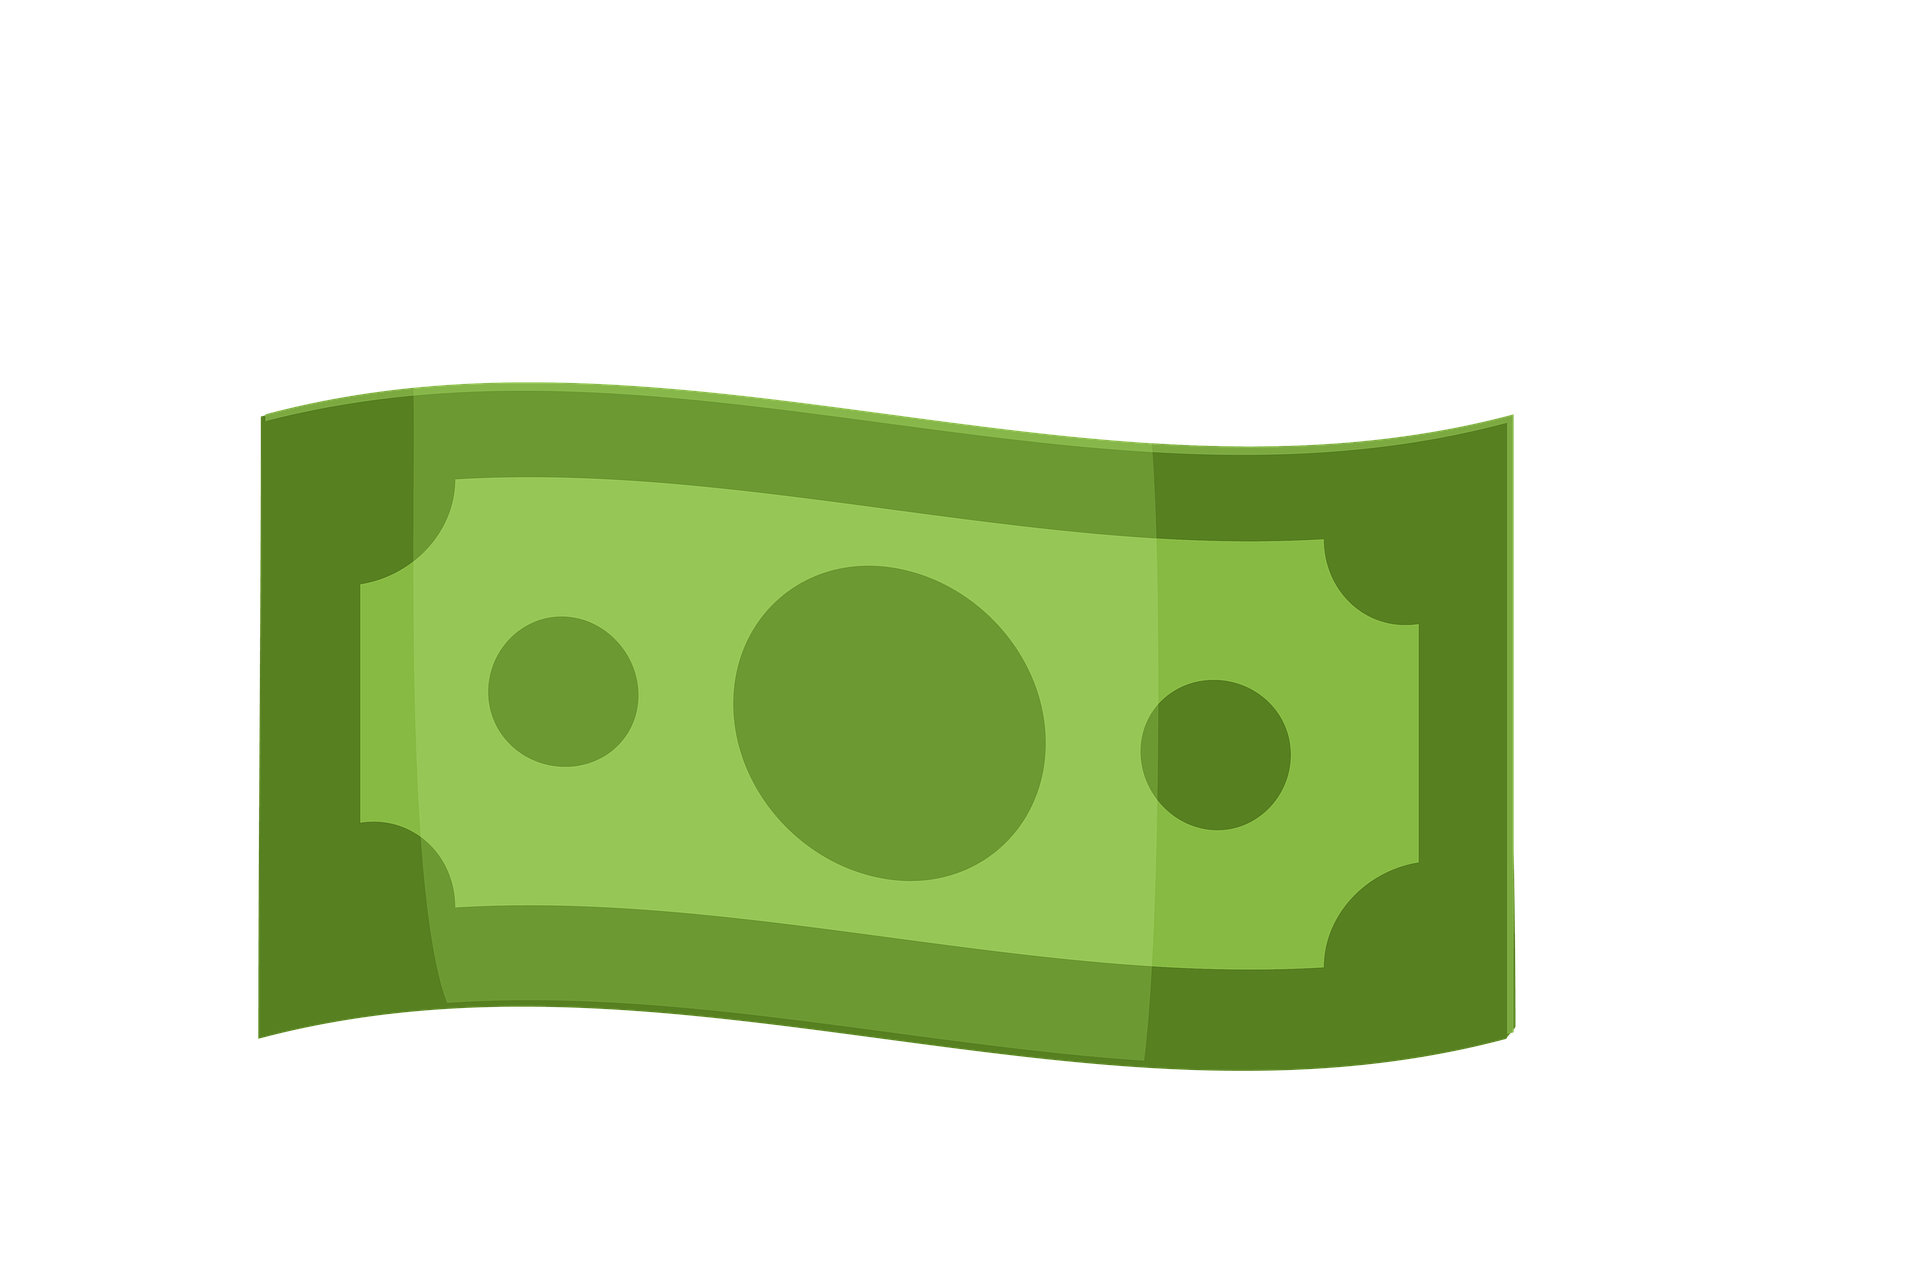 money-3487038_1920.png